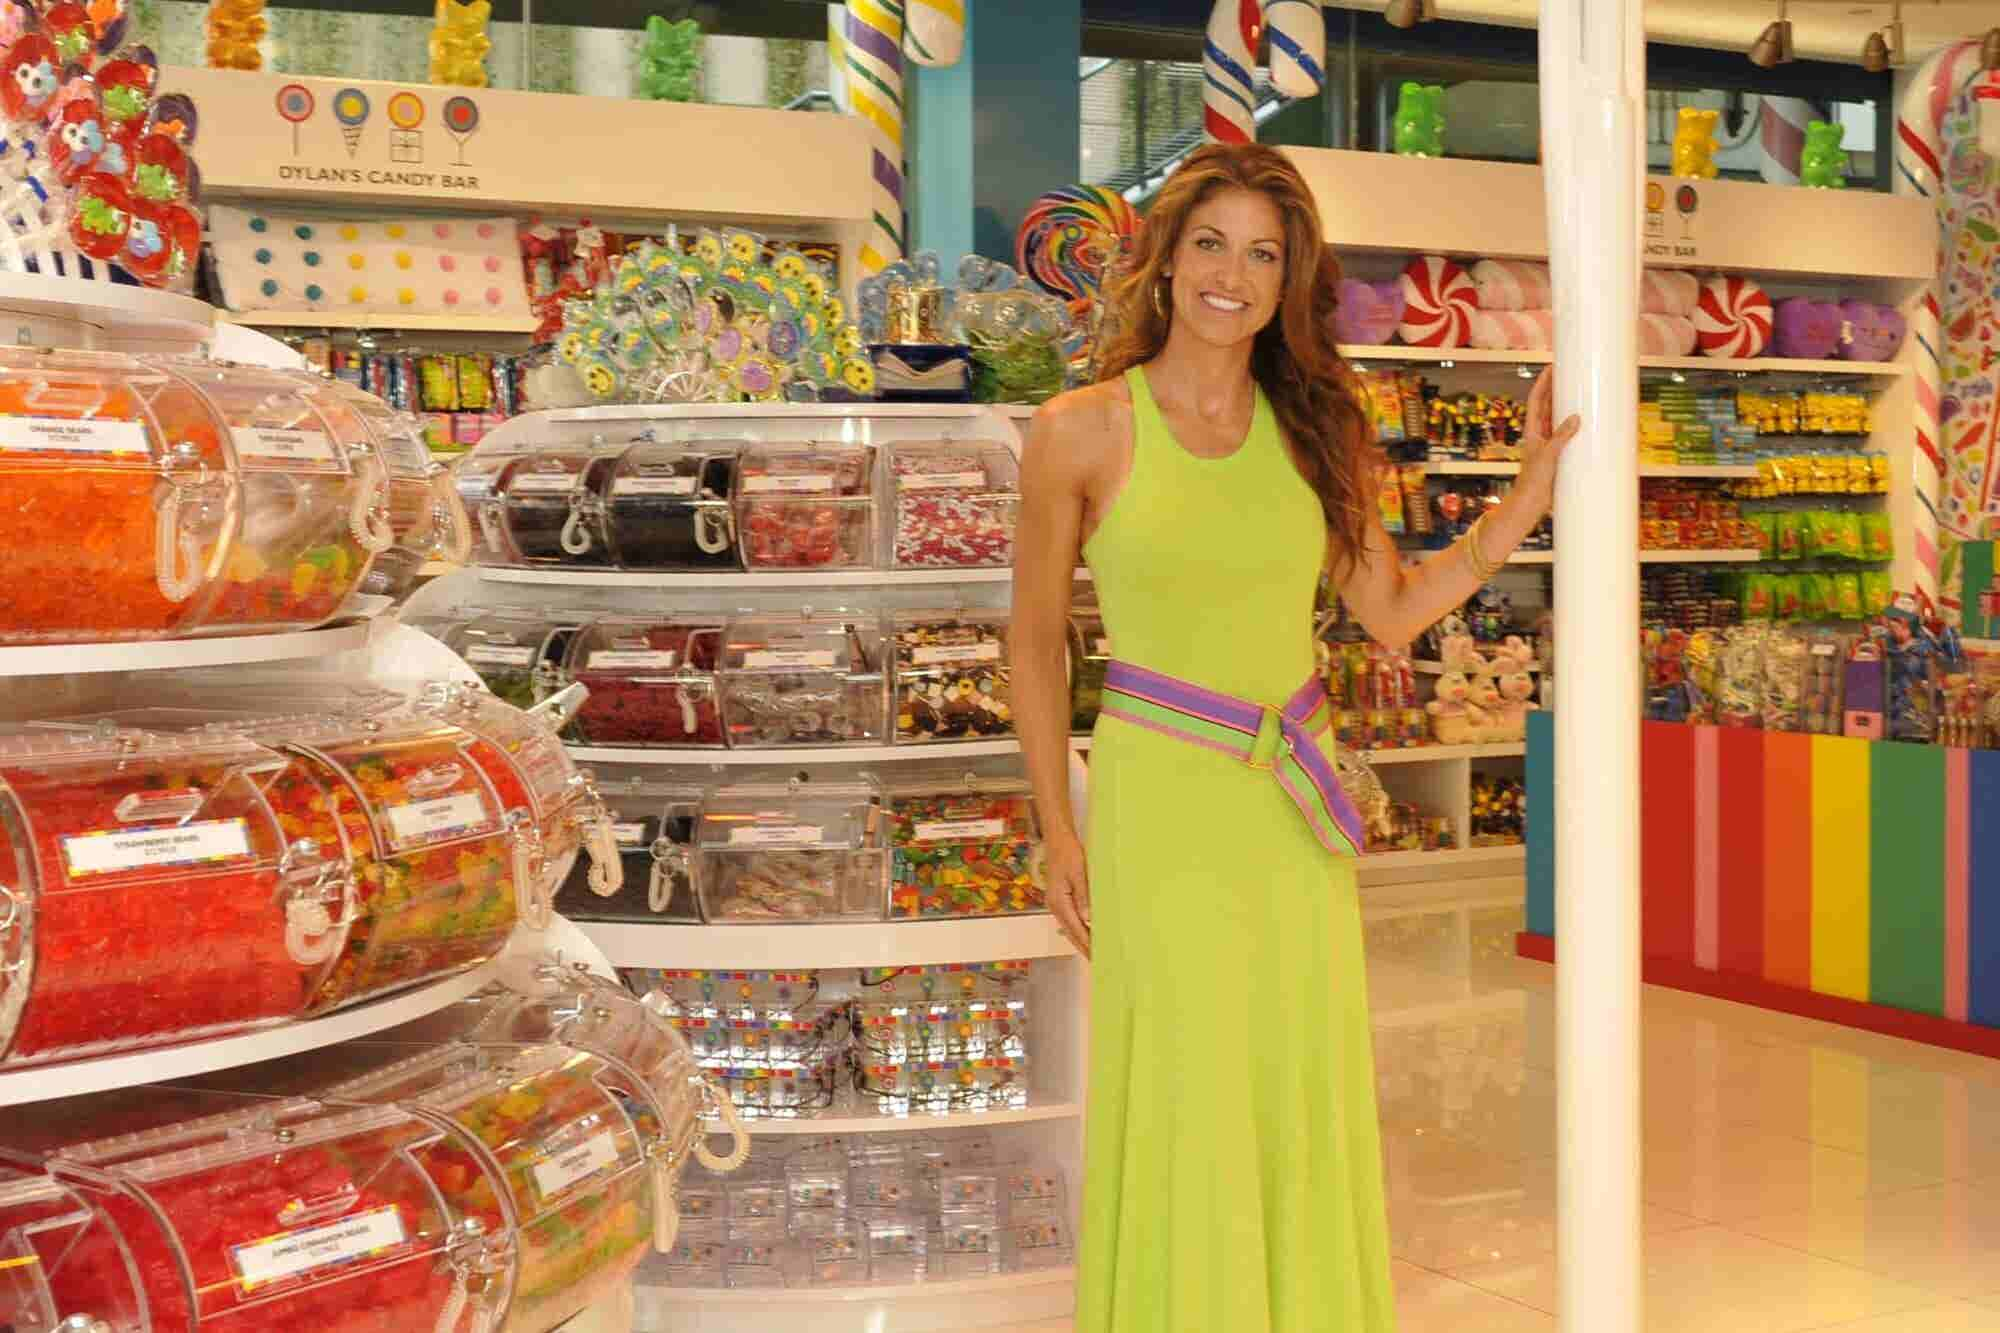 A Sweet Day in the Life of Dylan Lauren, the Founder of Dylan's Candy...